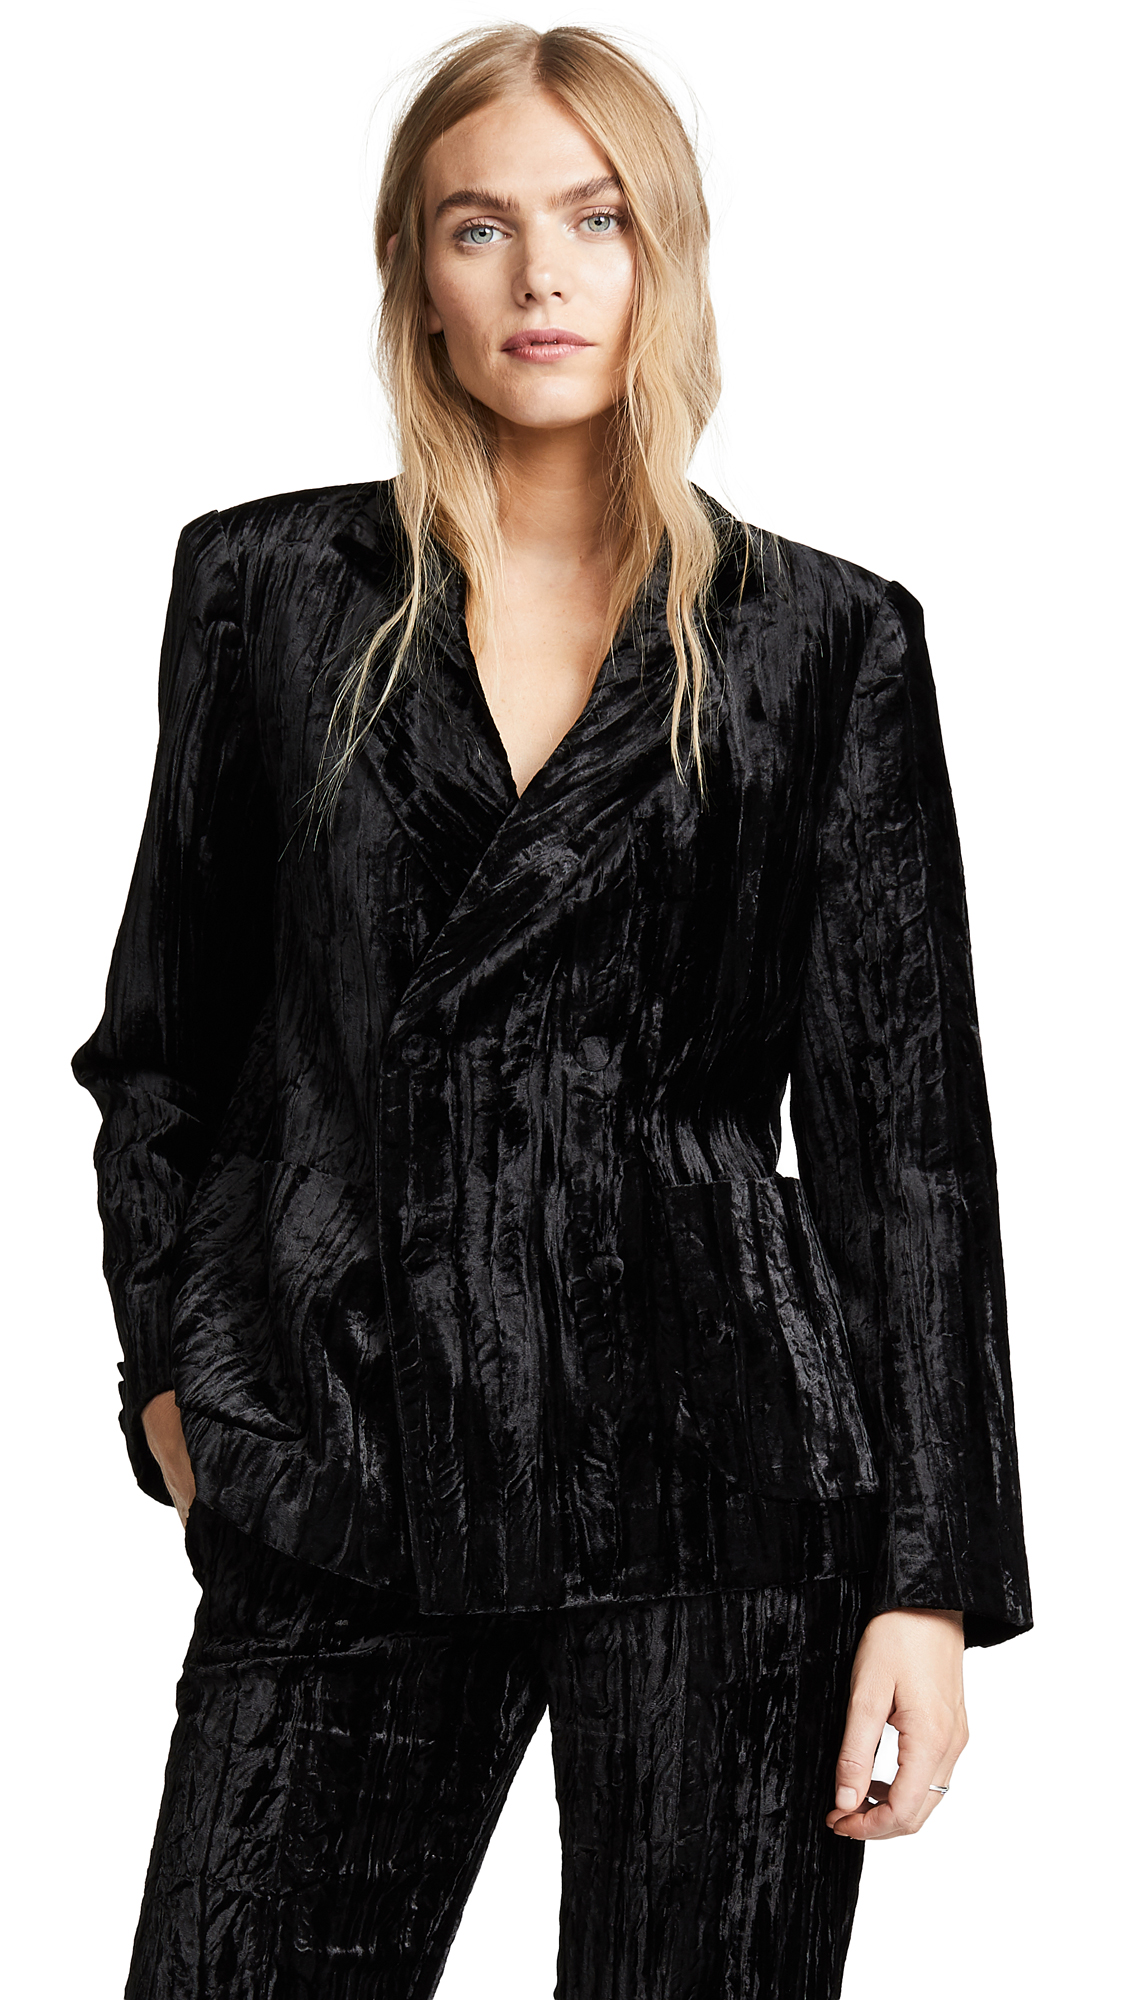 JOURDEN Crushed Velvet Blazer in Black